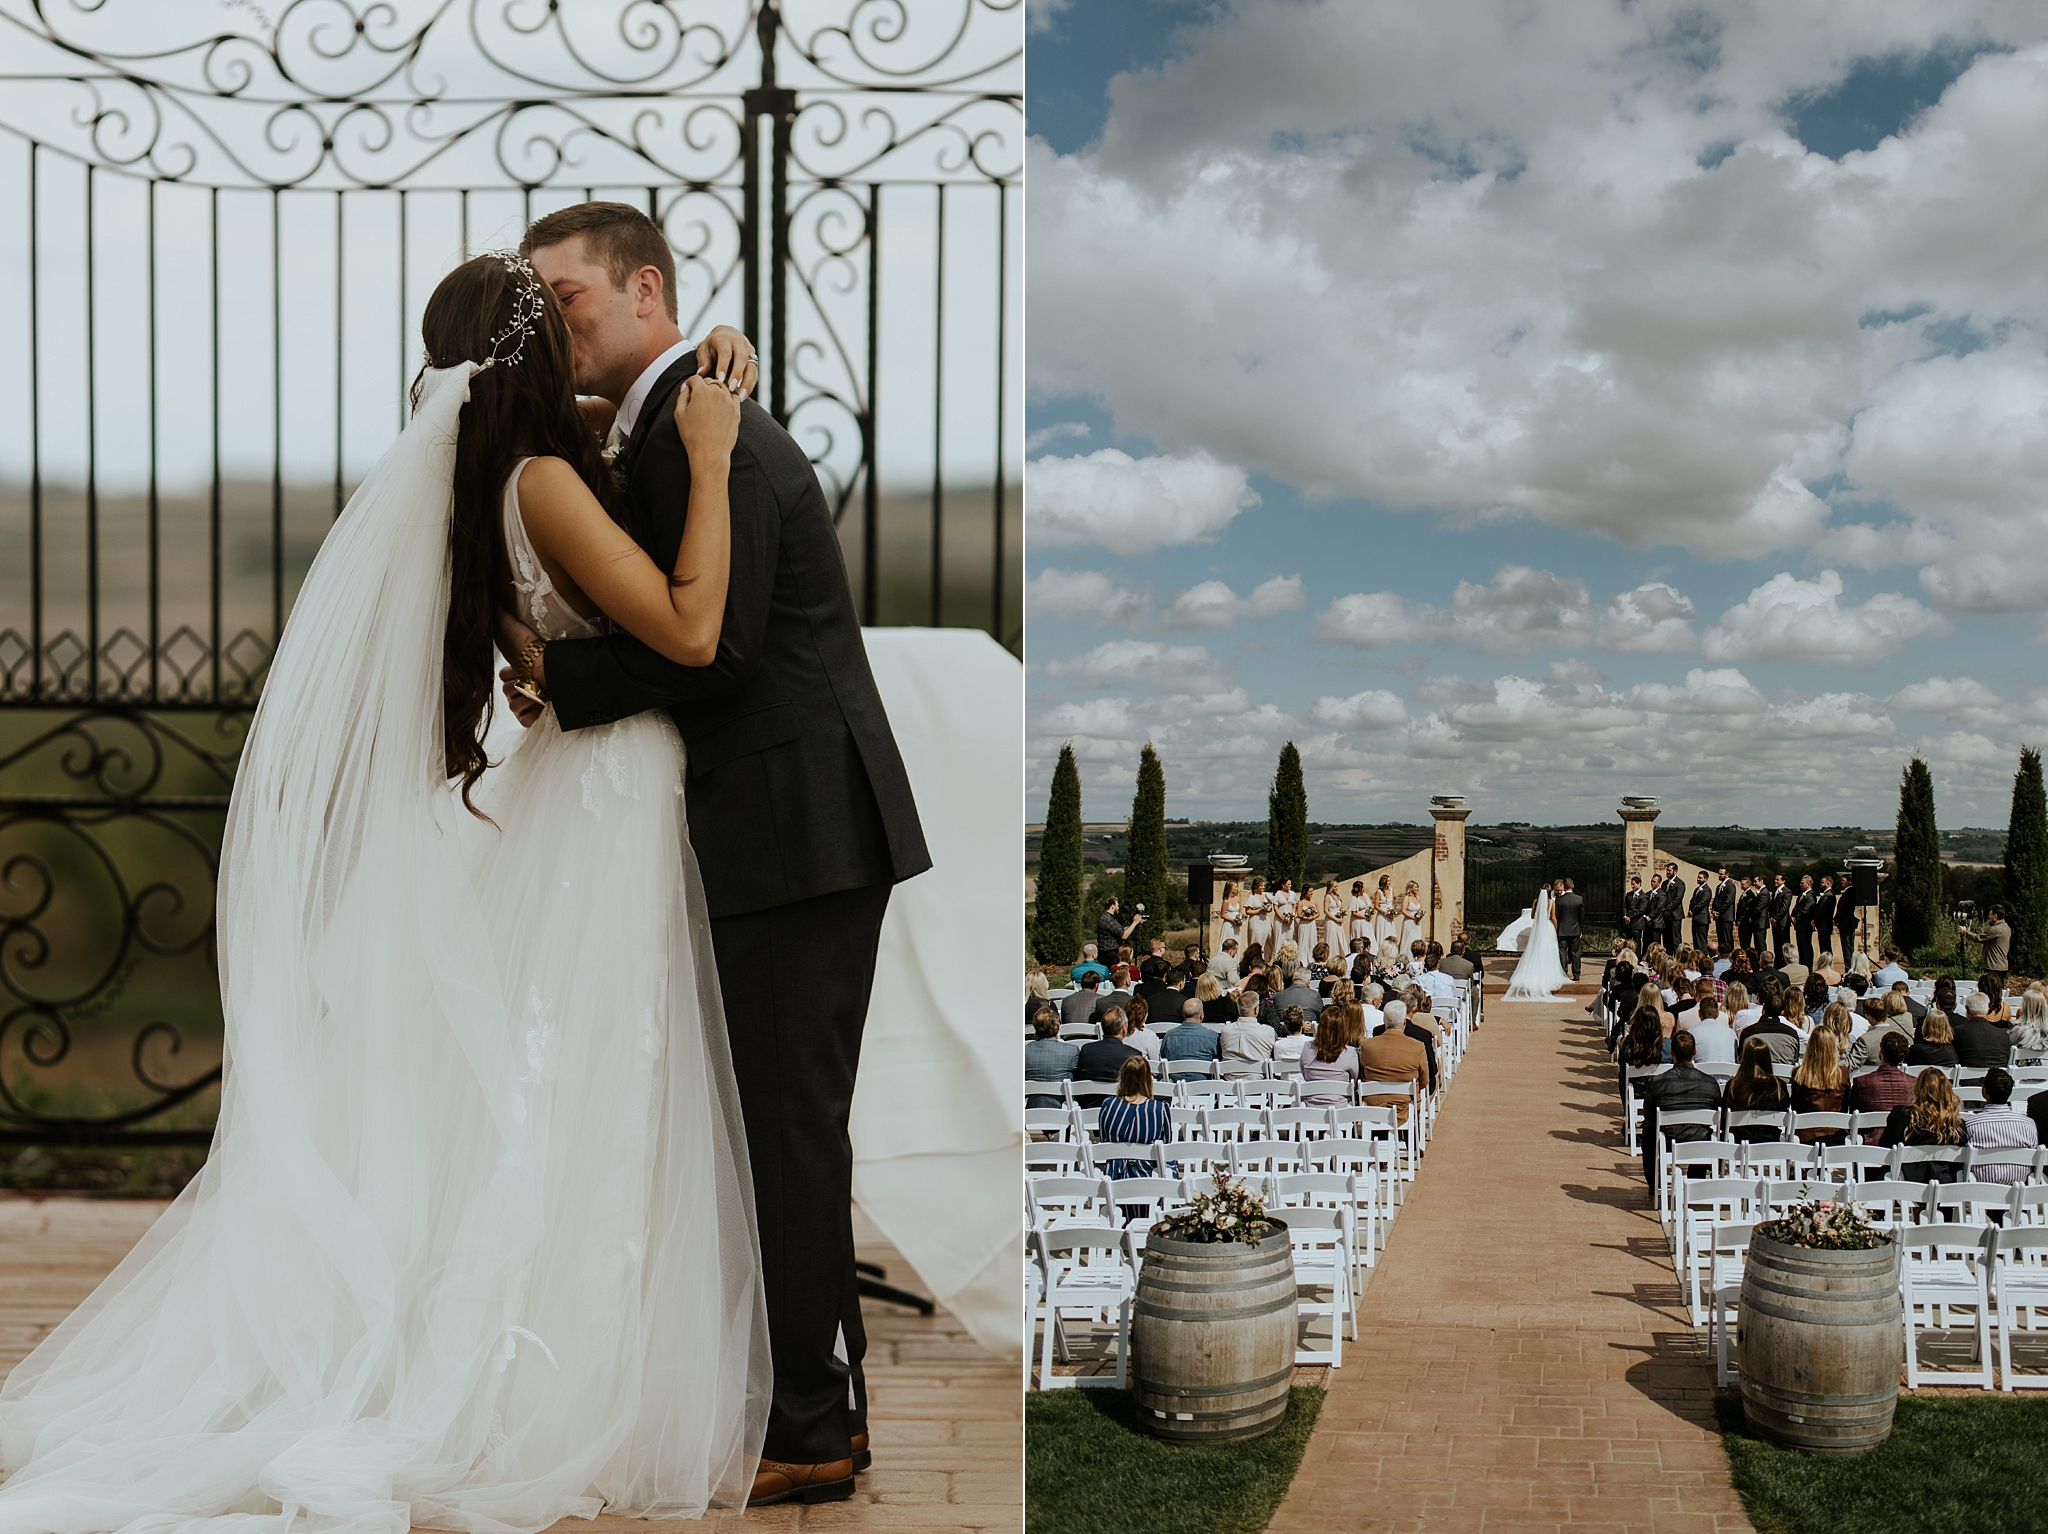 Italian Wedding at Bella Terre Vineyard - Trin Jensen Photography_0041.jpg